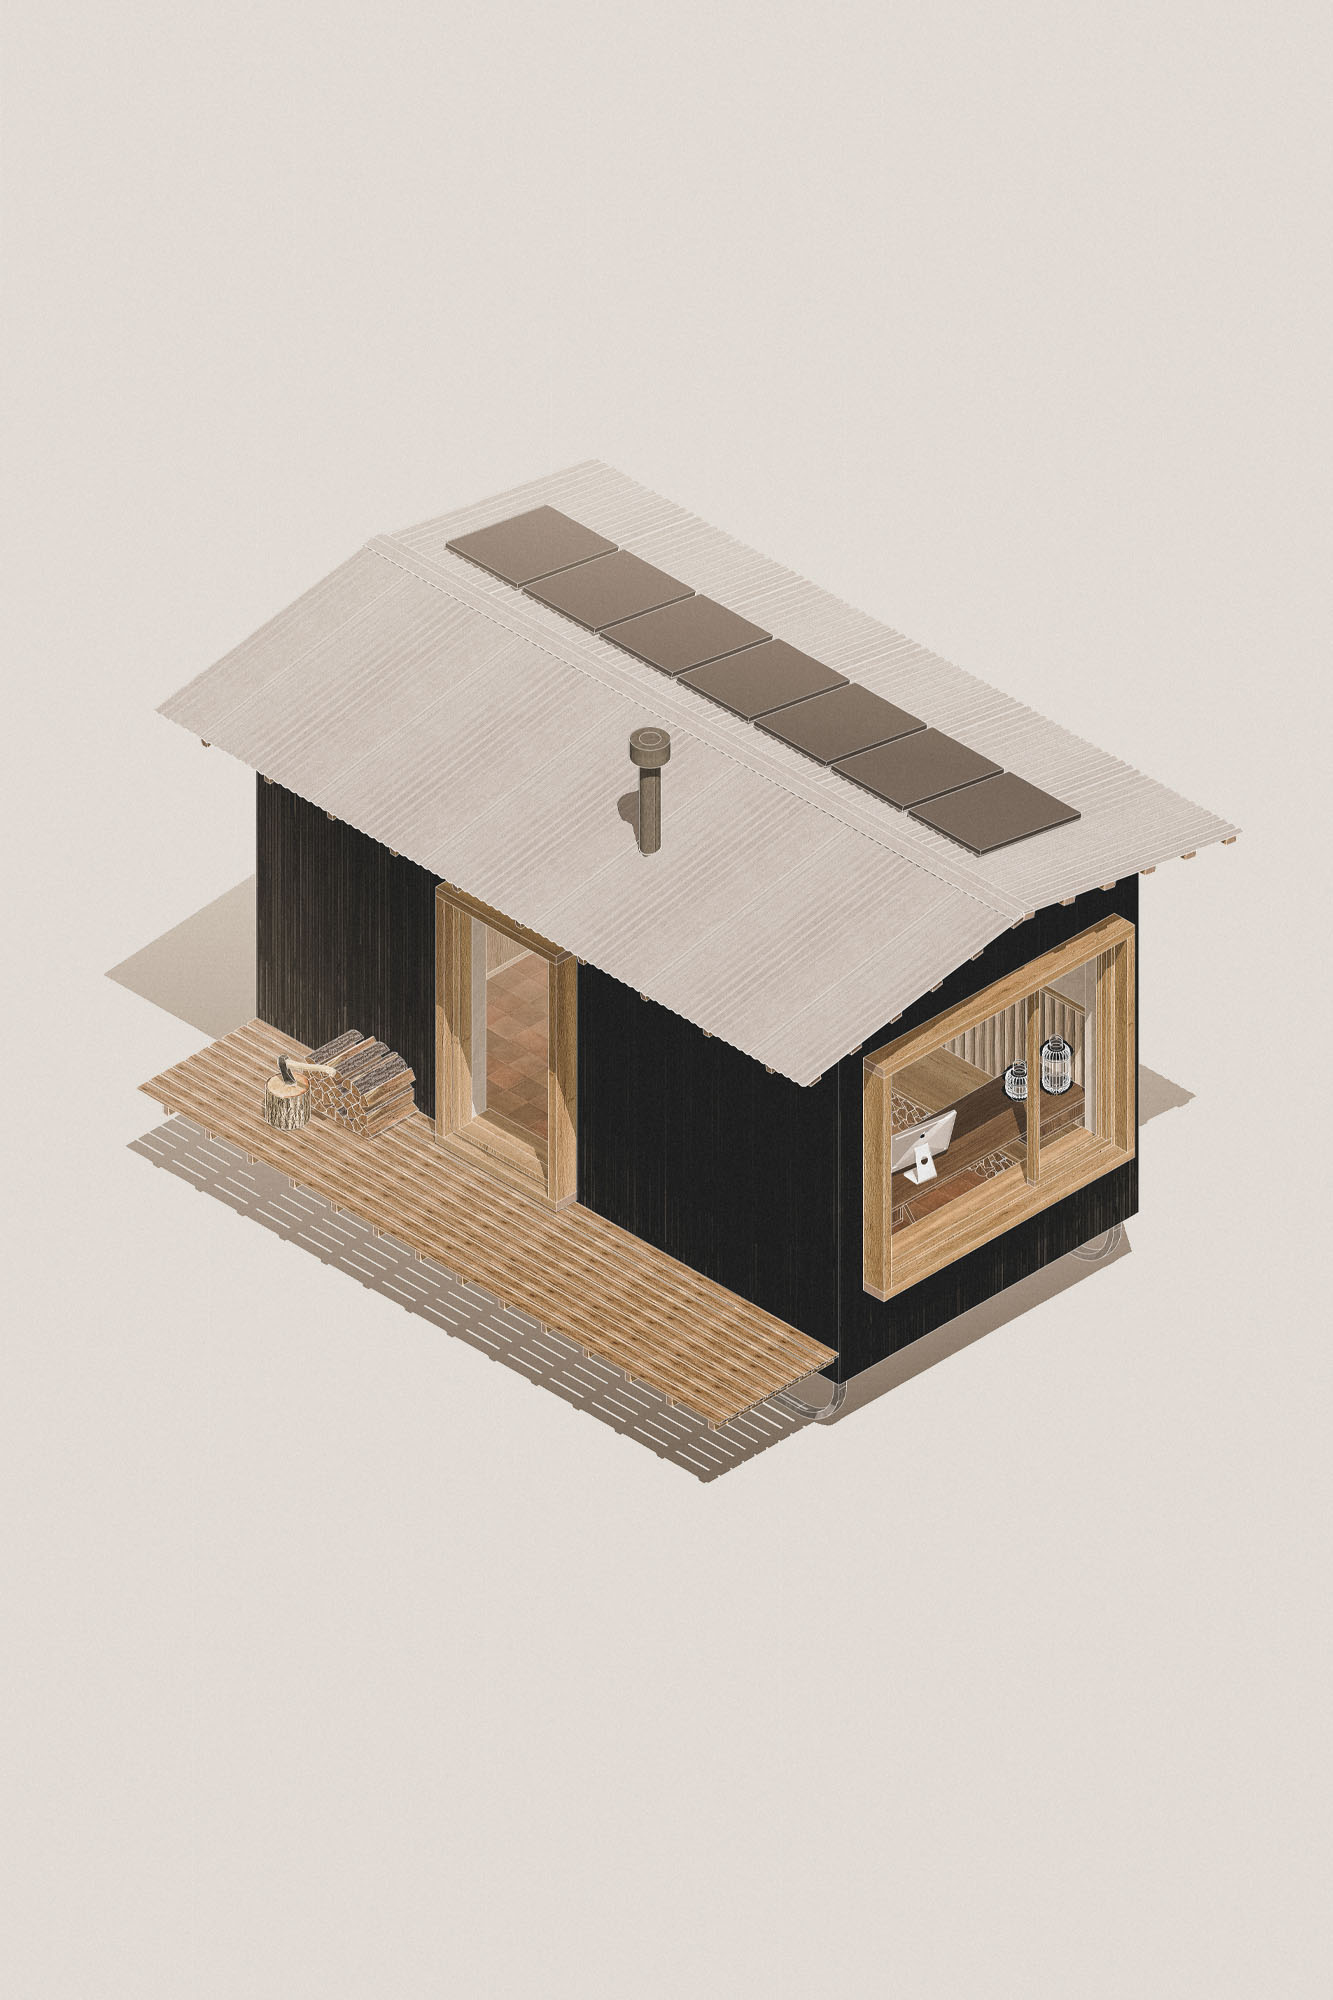 tiny home wooden nomad cabin office with office desk, wood burning stove and storage